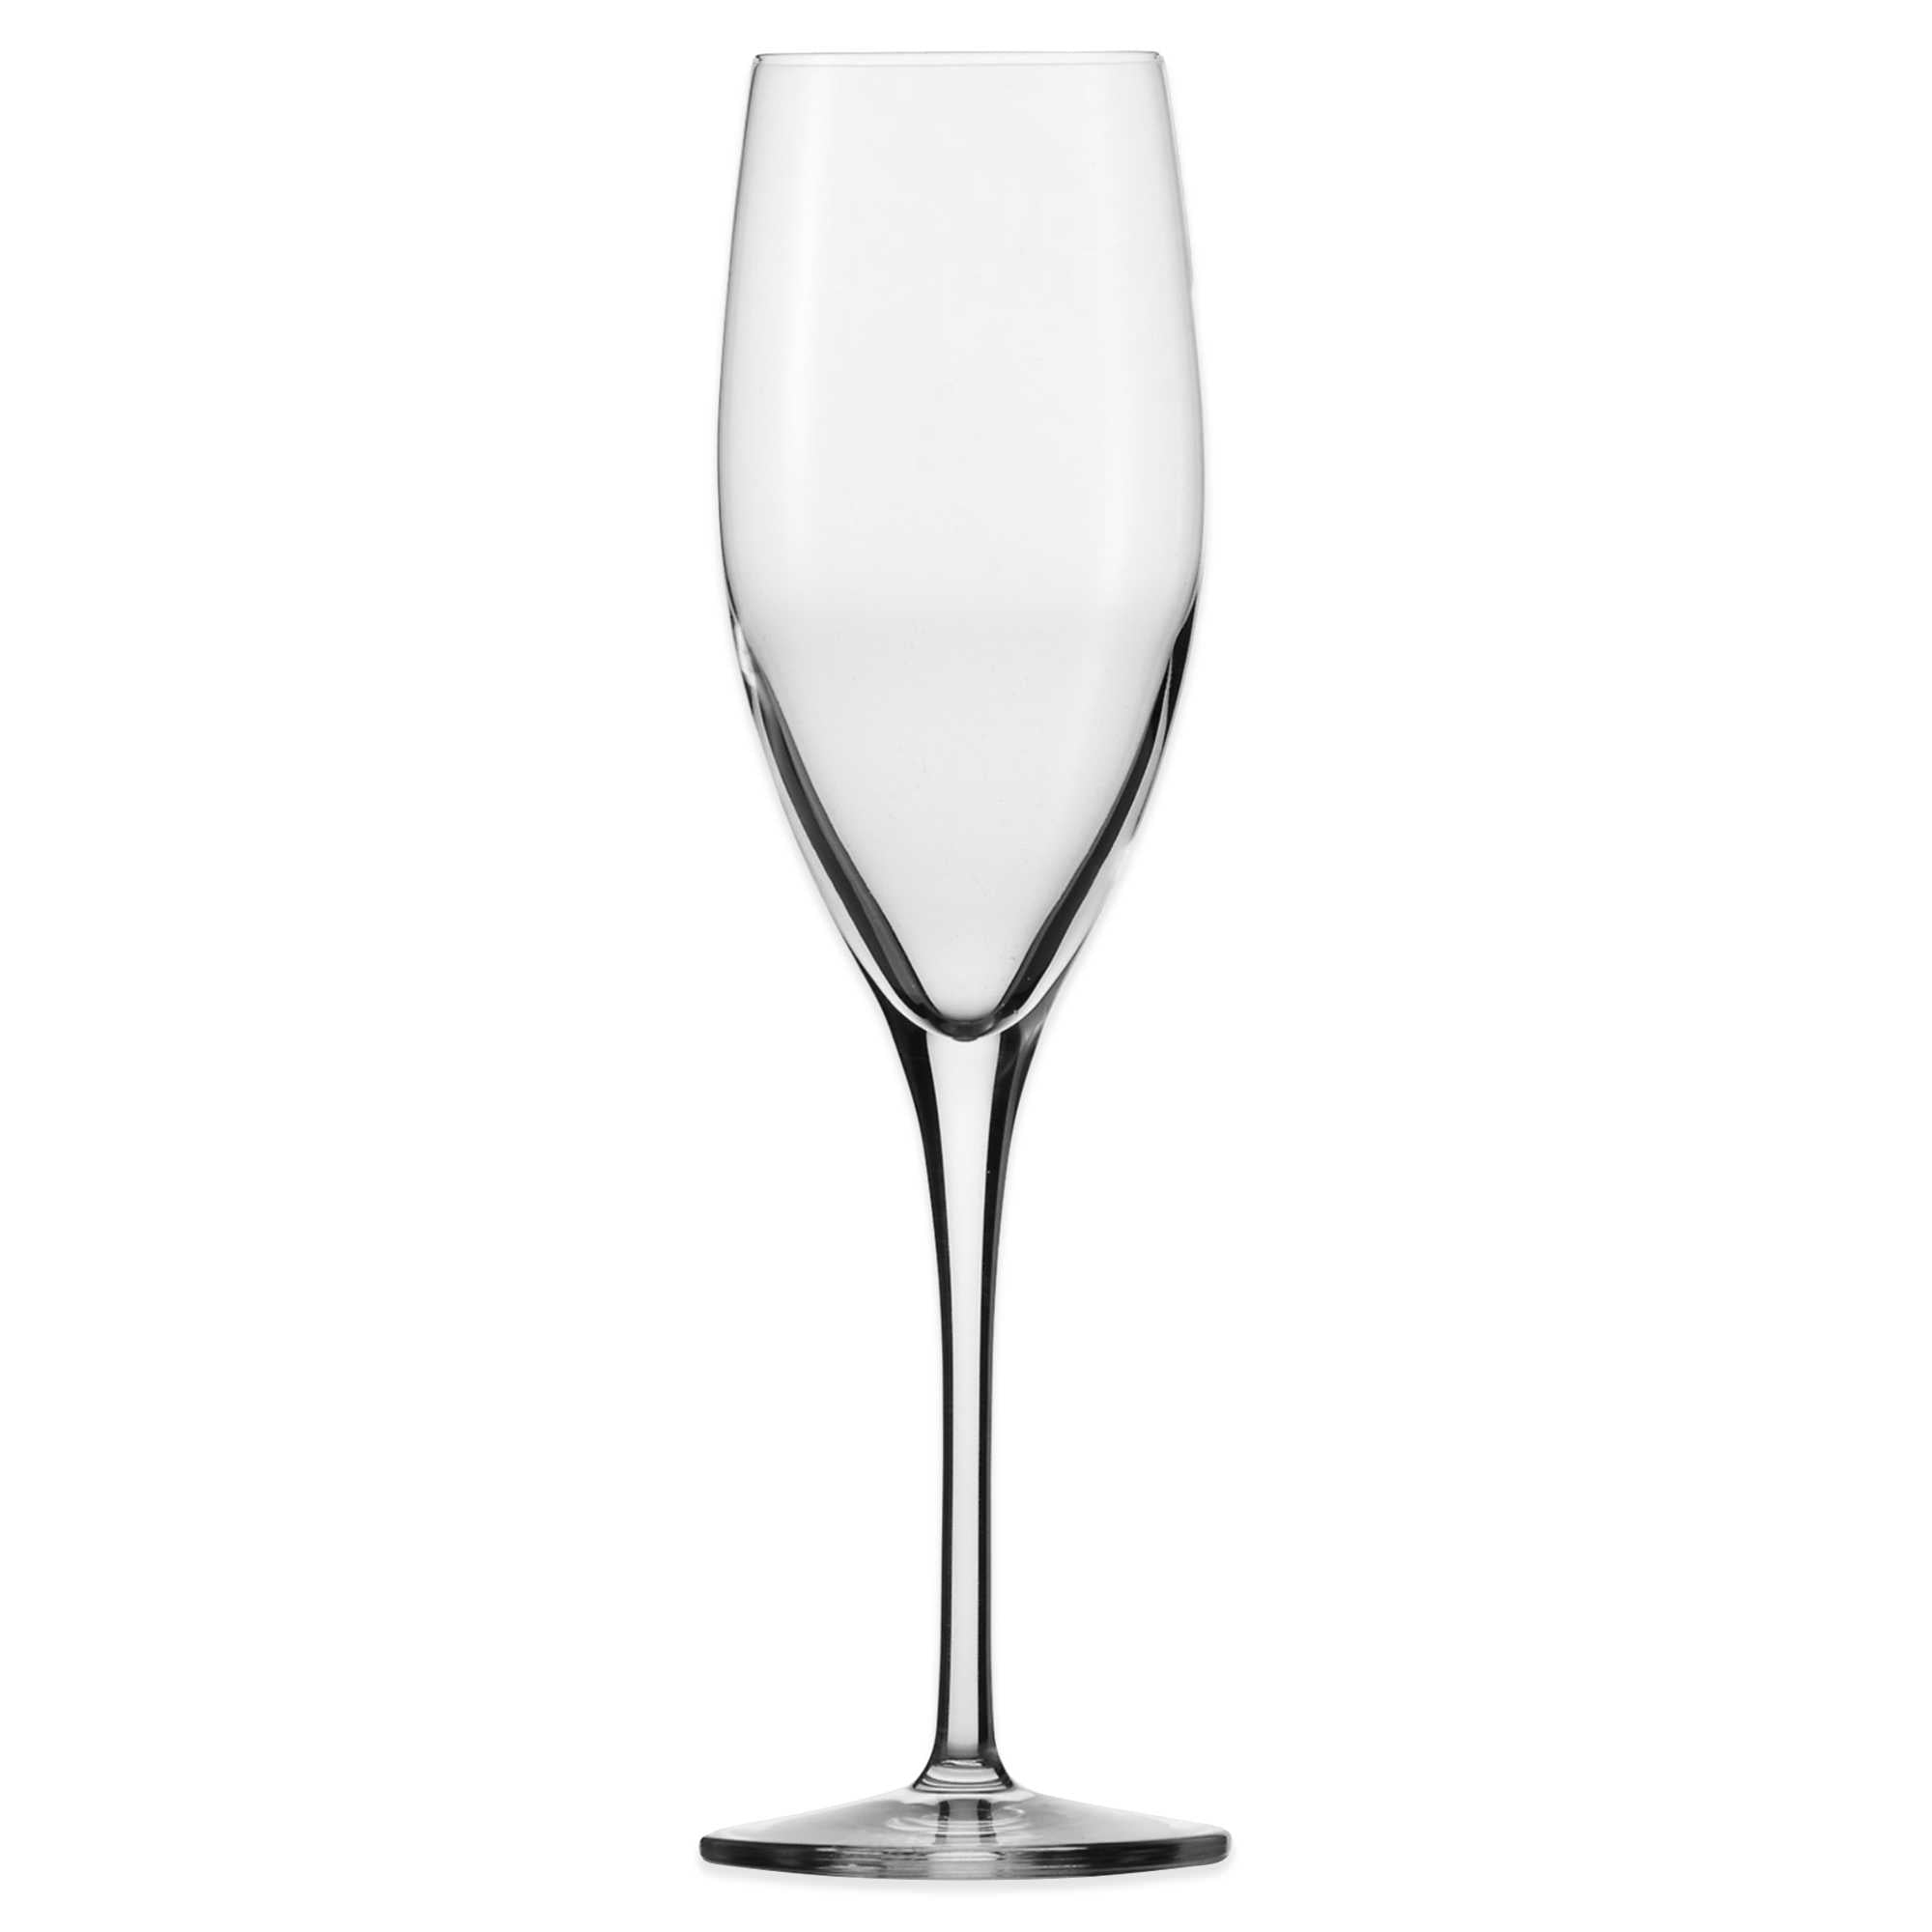 Eisch Superior Champagne Glass